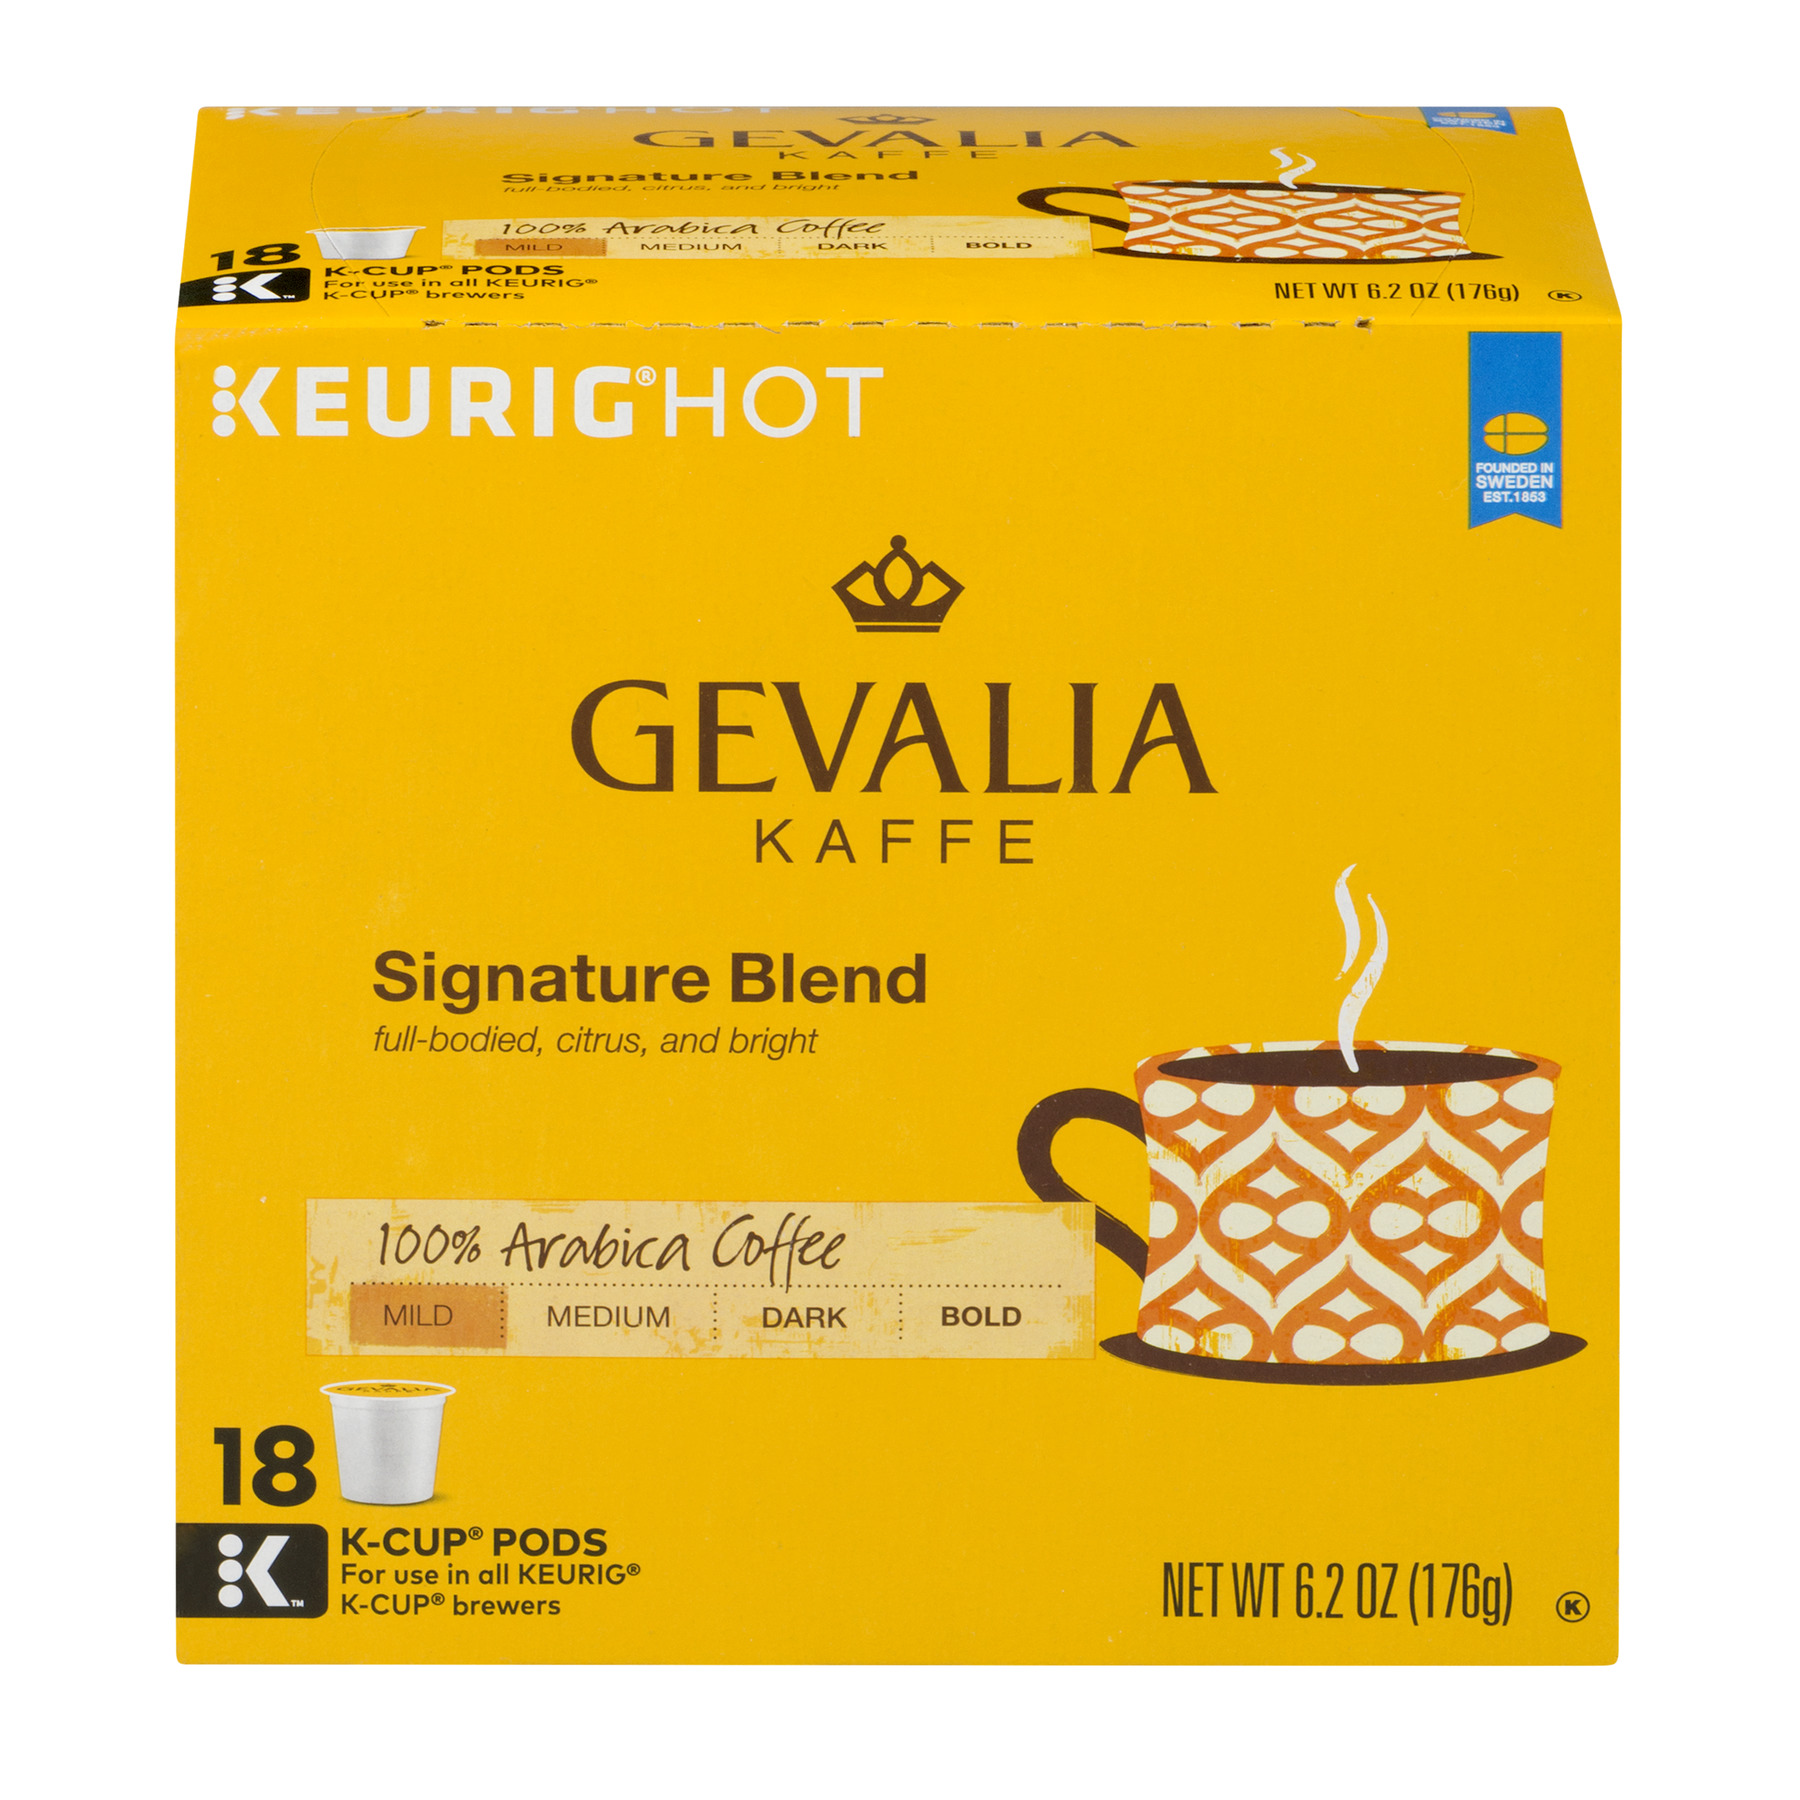 Gevalia Kaffe 100% Arabica Coffee Signature Blend Mild - 18 CT